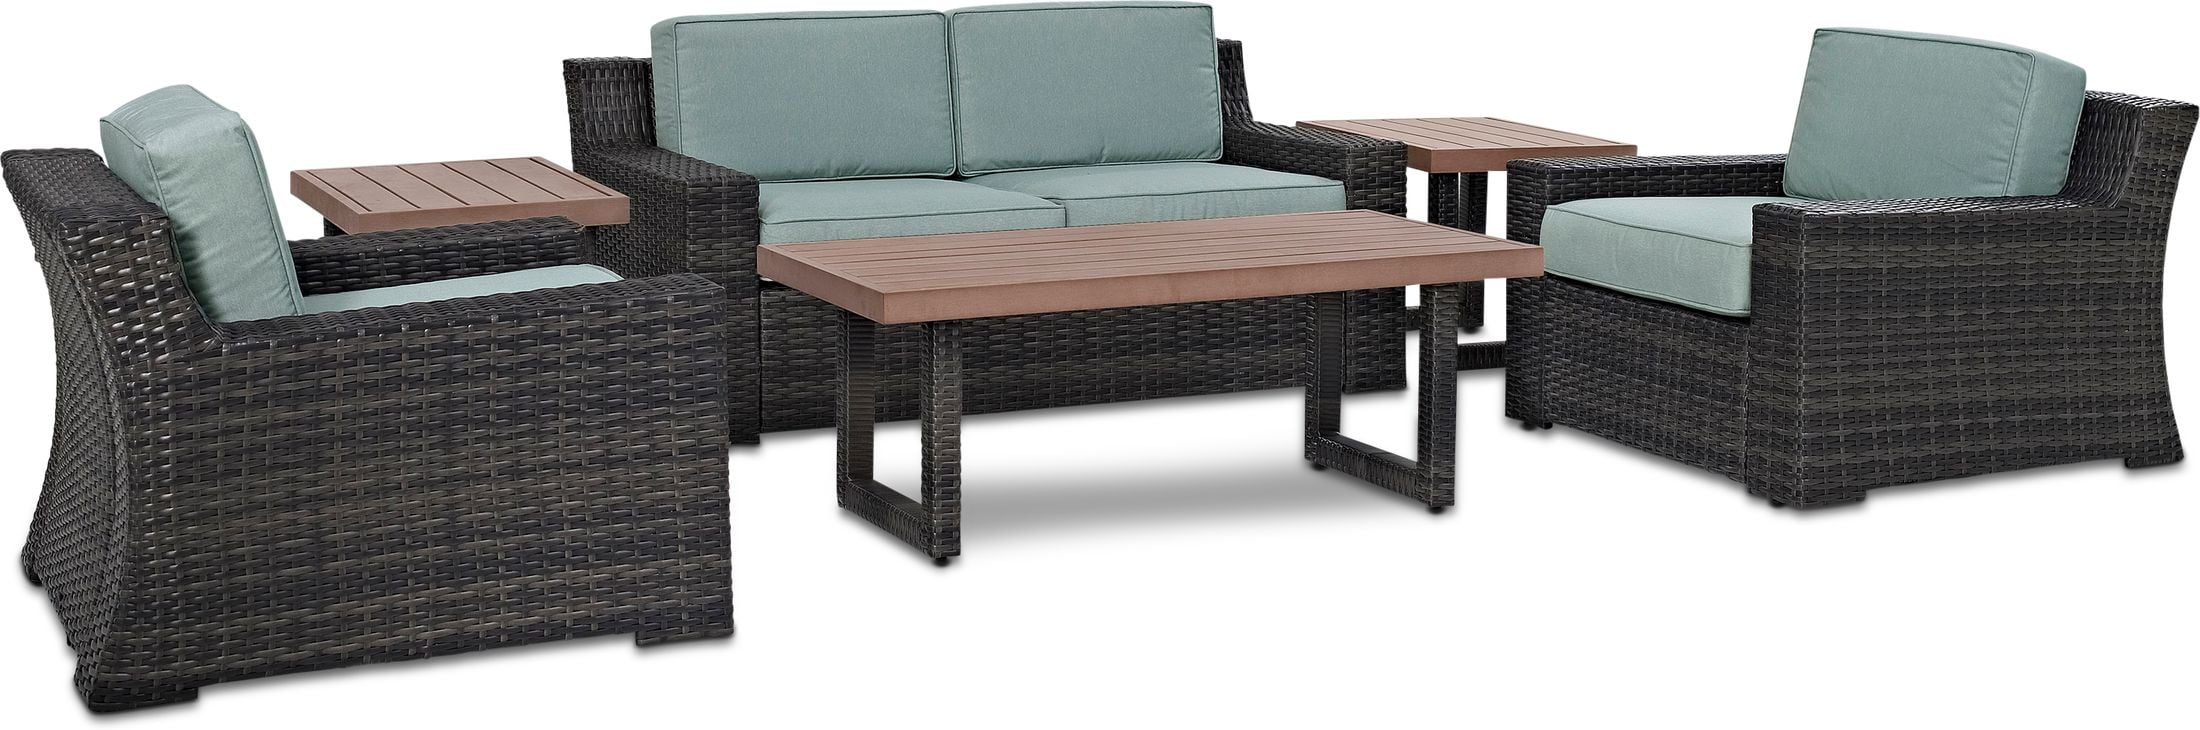 Outdoor Furniture - Tethys Outdoor Loveseat, 2 Chairs, Coffee Table, and 2 End Tables Set